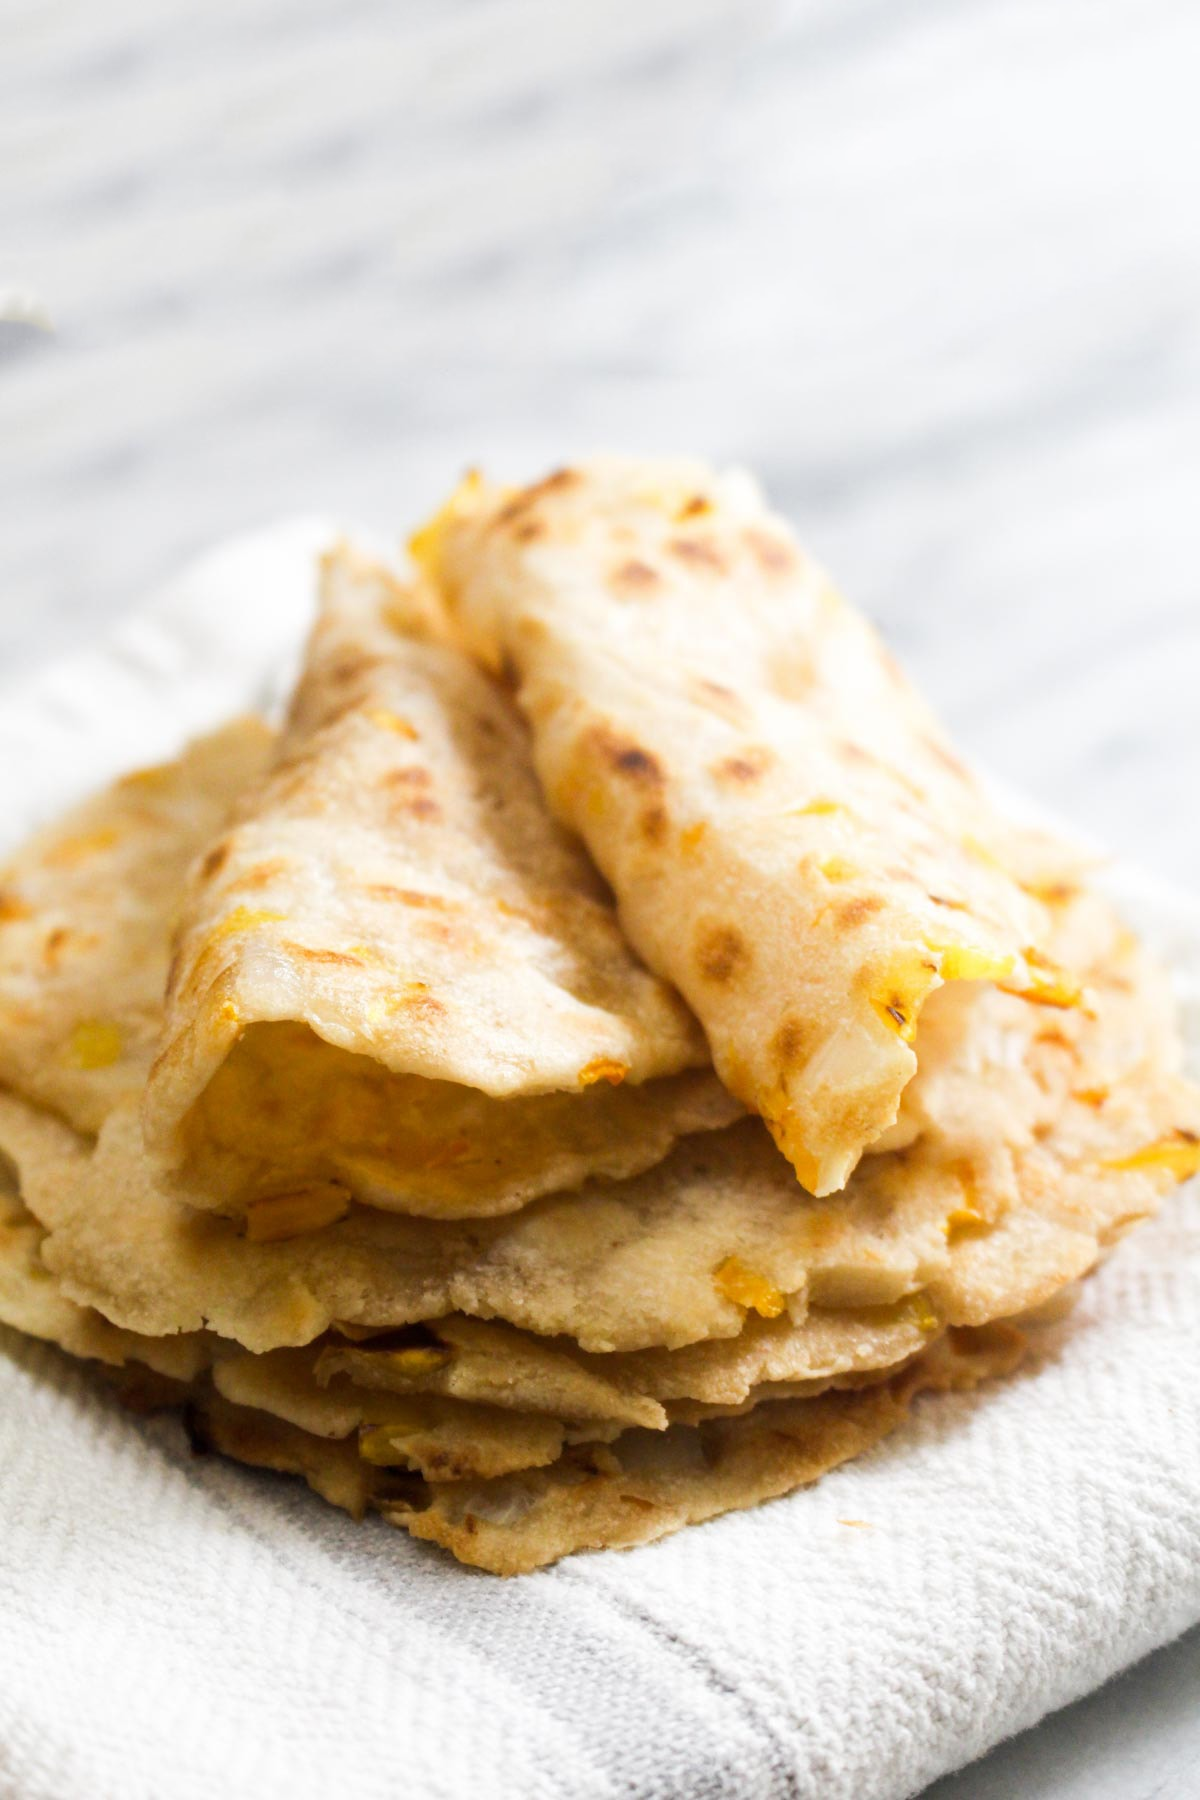 Casava Flatbread is an easy to make grain free and paleo flatbread. It is soft, flexible and full of onions and peppers to give it loads of flavor.   CatchingSeeds.com